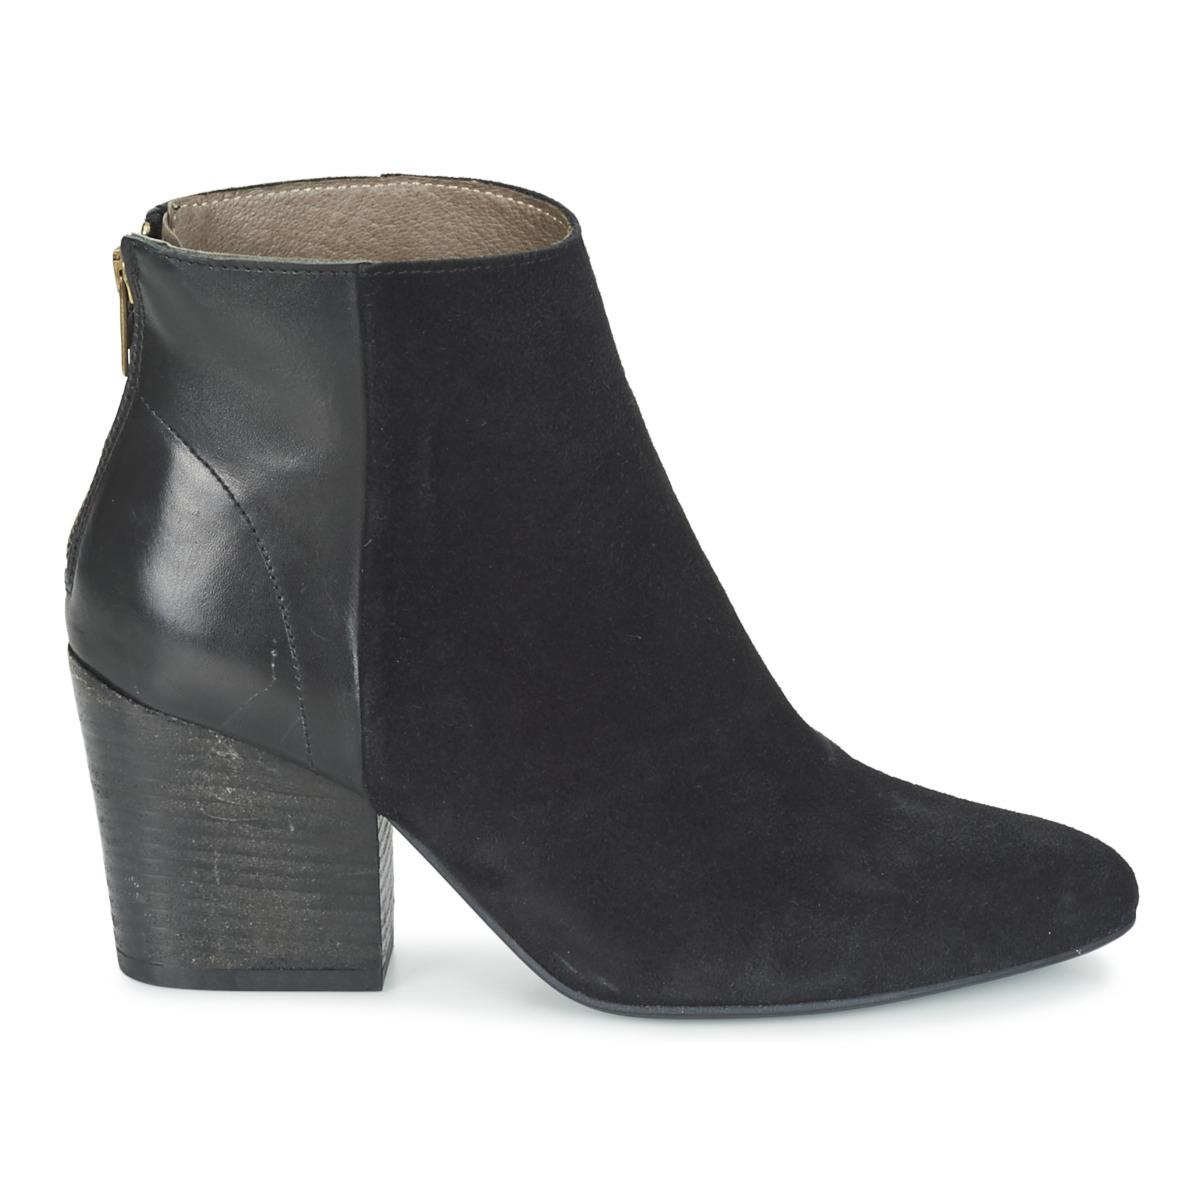 Hudson MELI CALF women's Low Ankle Boots in Many Kinds Of Sale Online UDlqwW